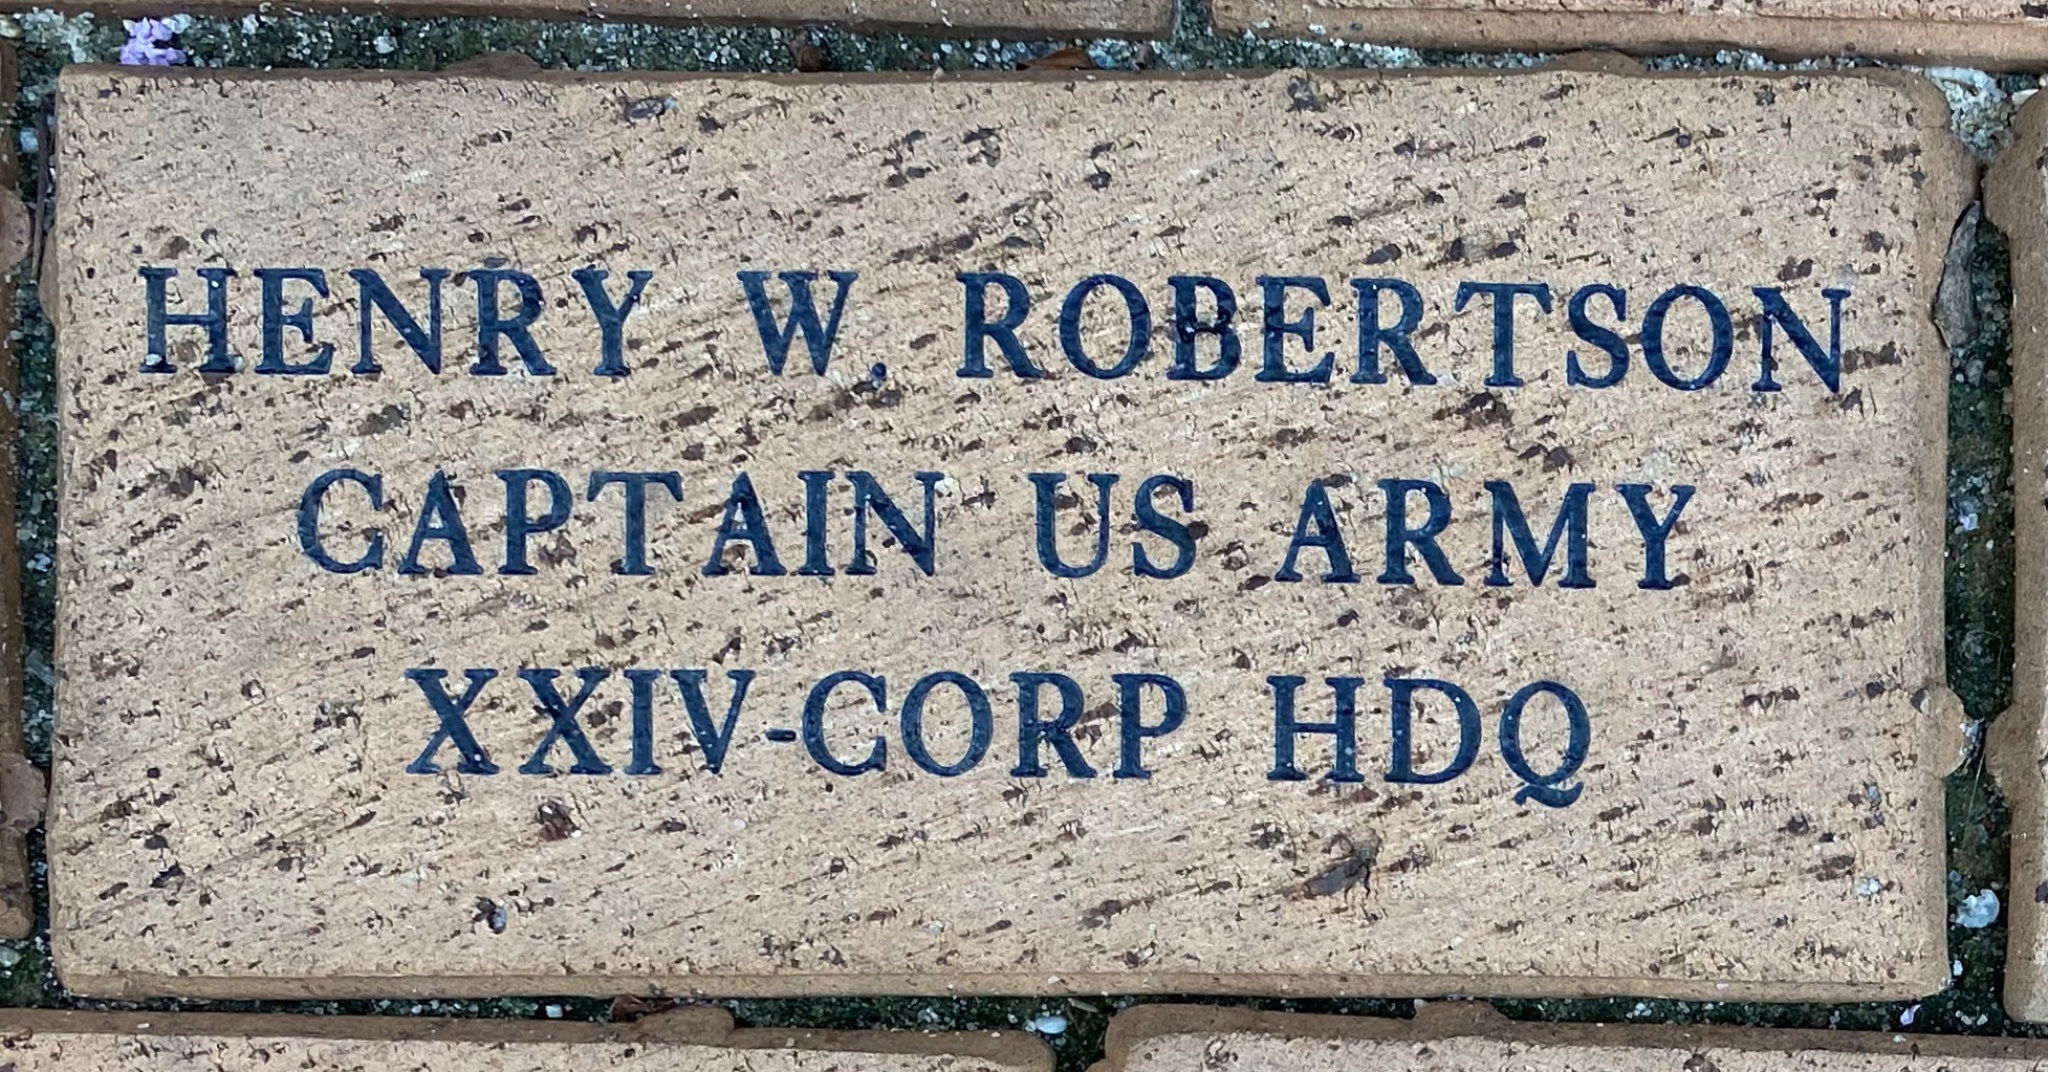 HENRY W. ROBERTSON CAPTAIN US ARMY XXIV CORPS HDQ